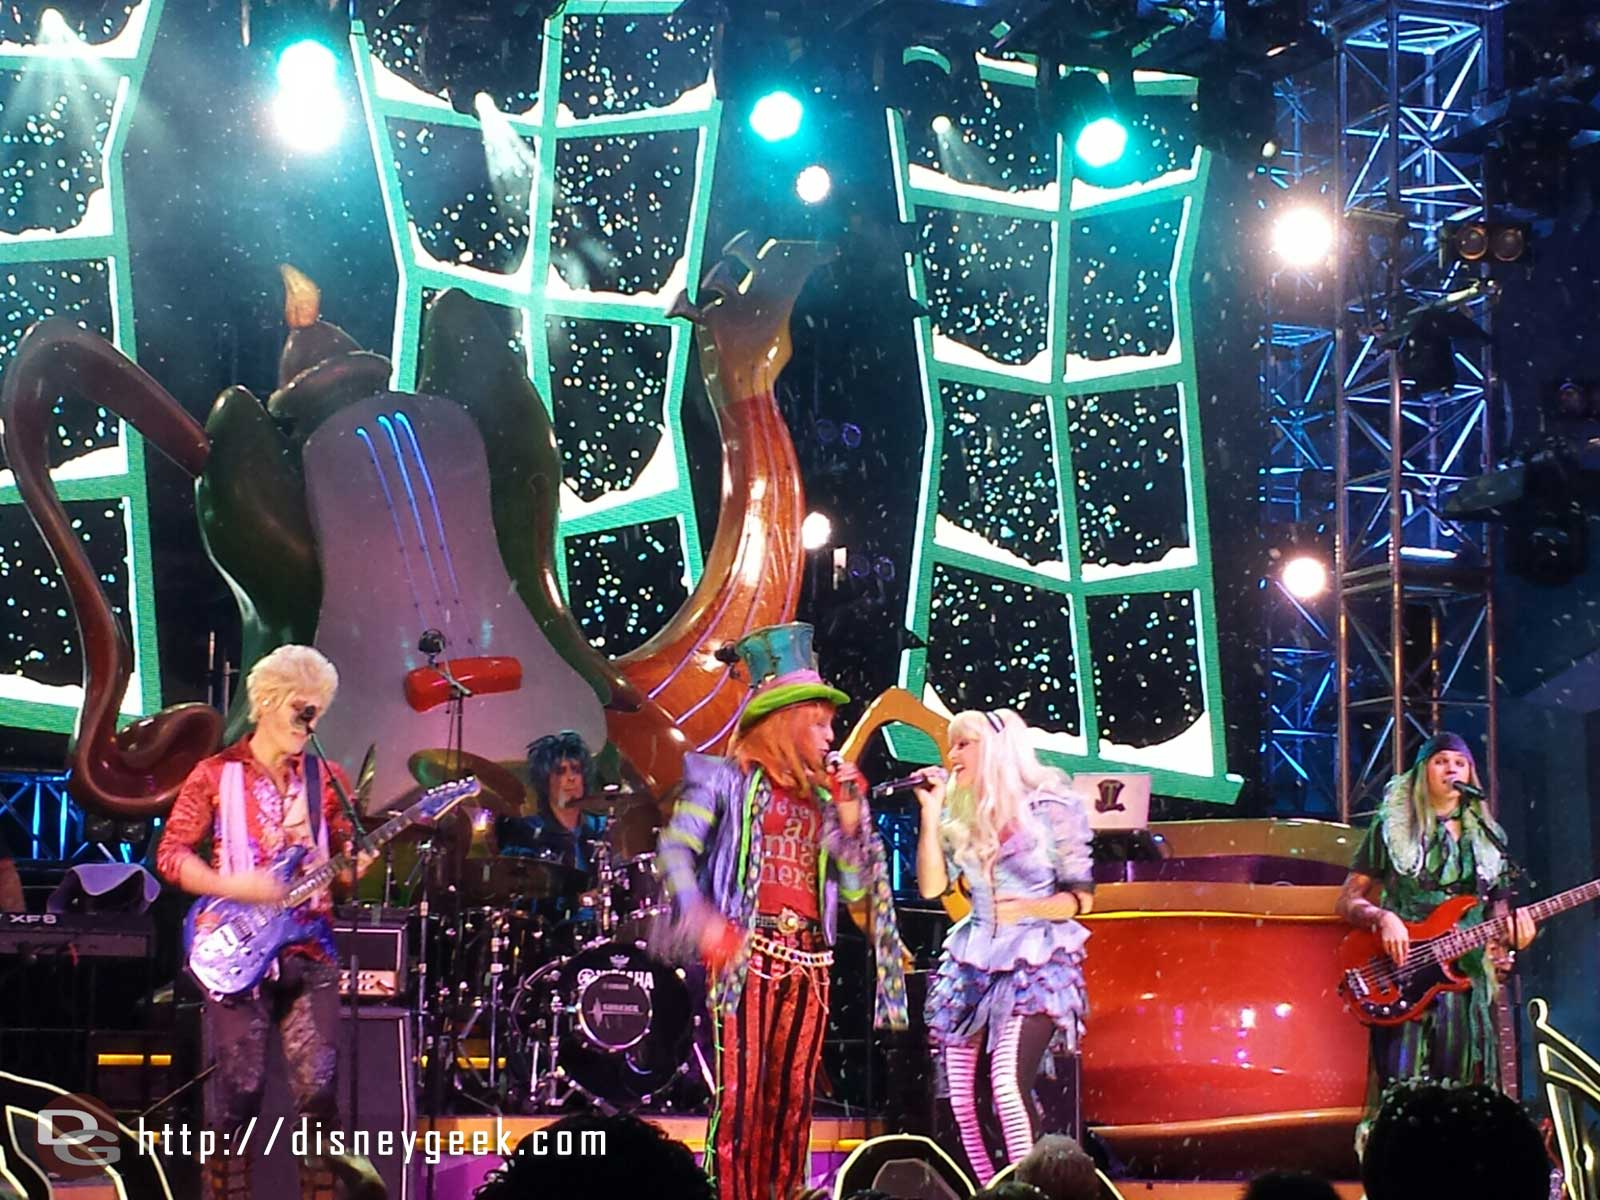 The #MadTParty Band sets have snowfall finales now